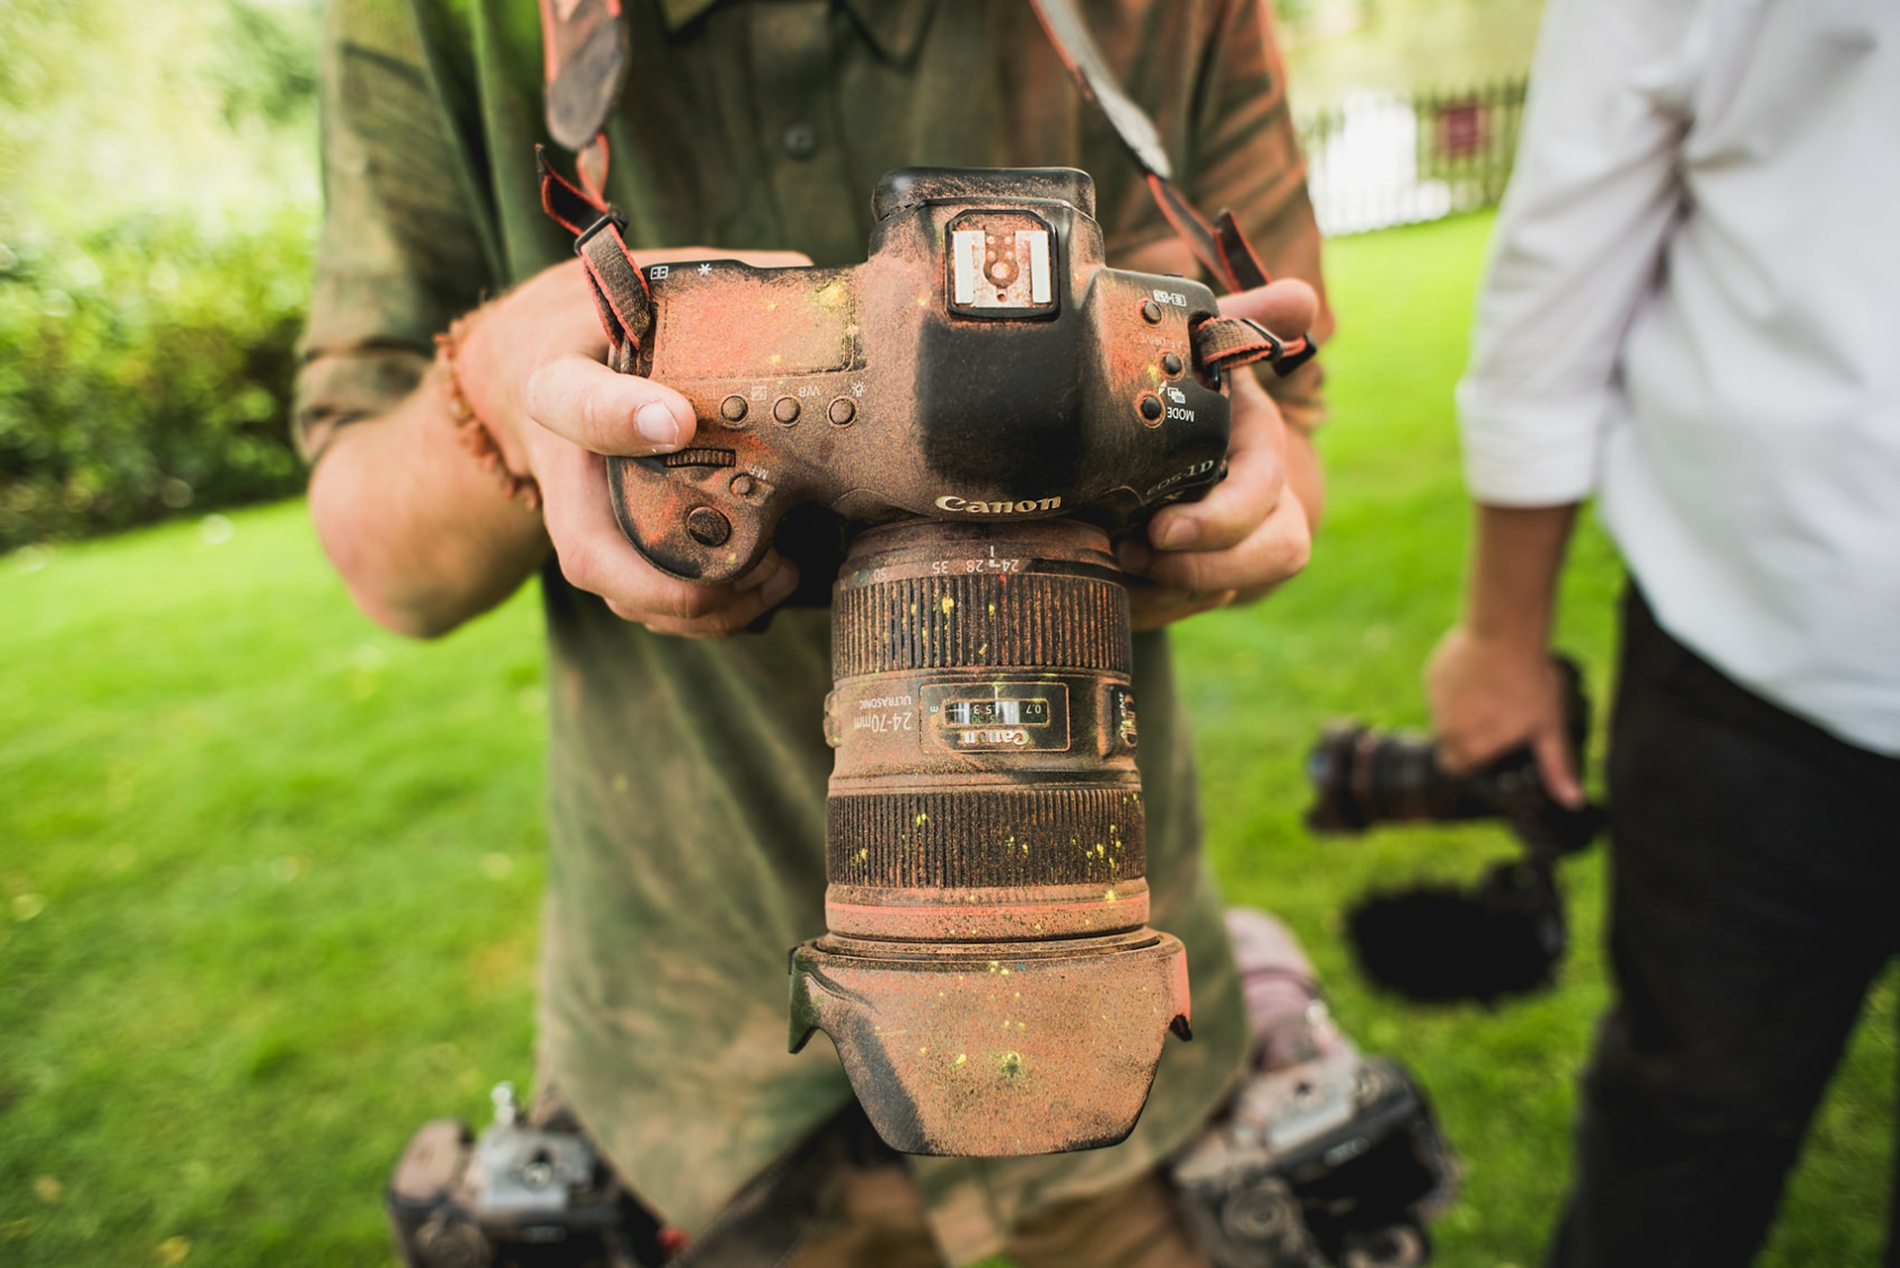 UK wedding reportage photographer camera gear taking a beating during a shoot